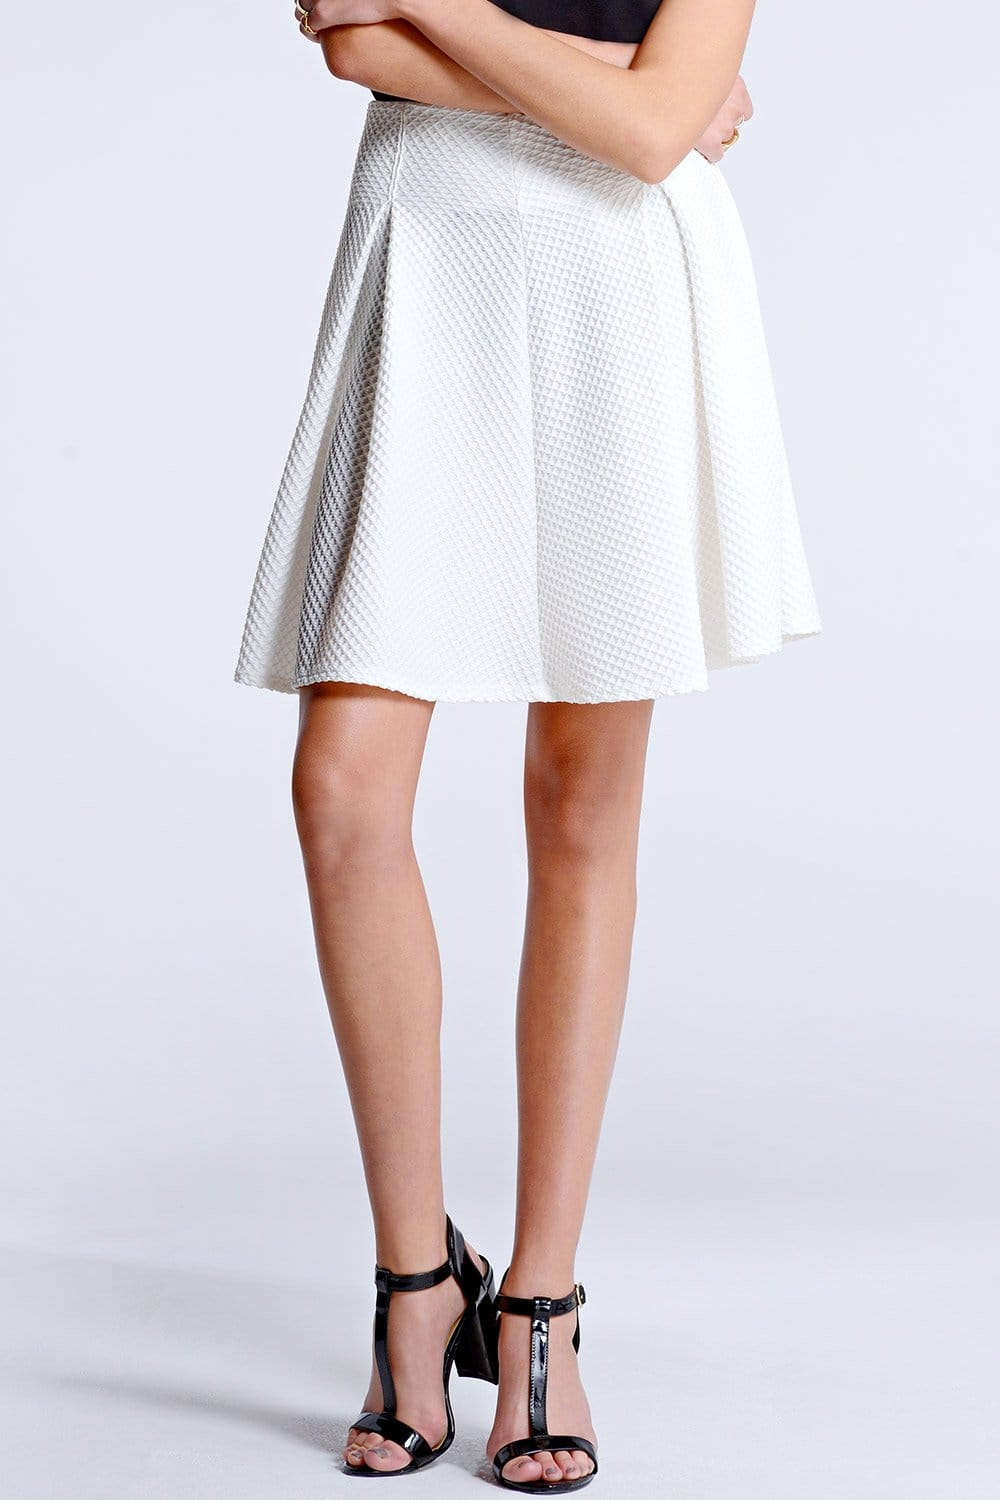 Outlet Girls On Film White Textured Mini Skater Skirt - Outlet ...